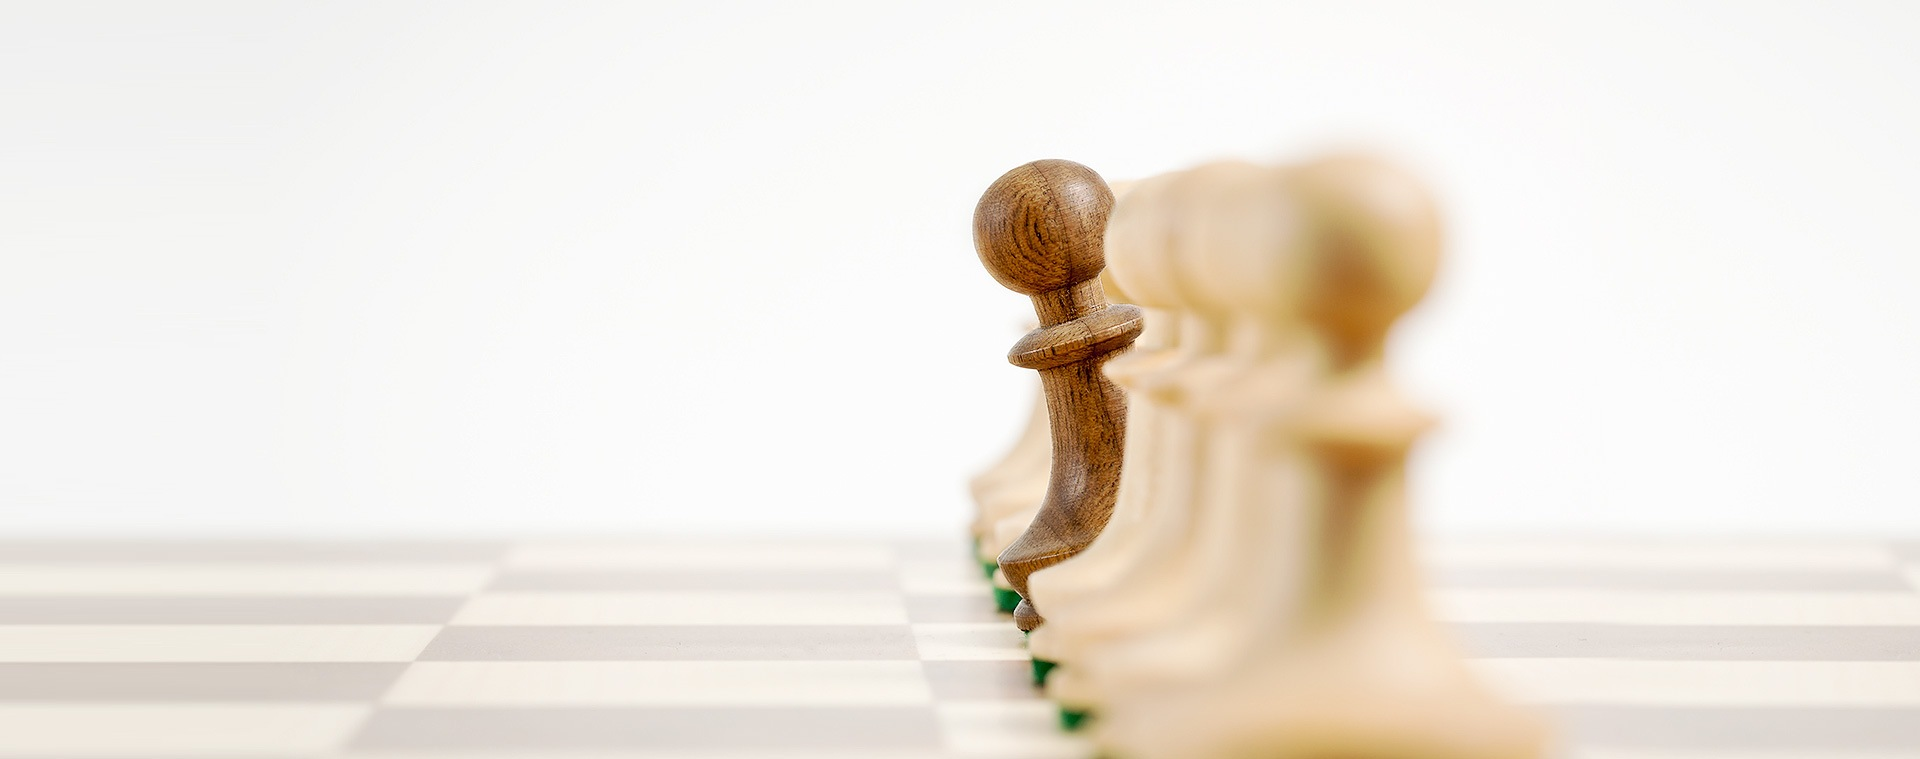 close-up-chessboard